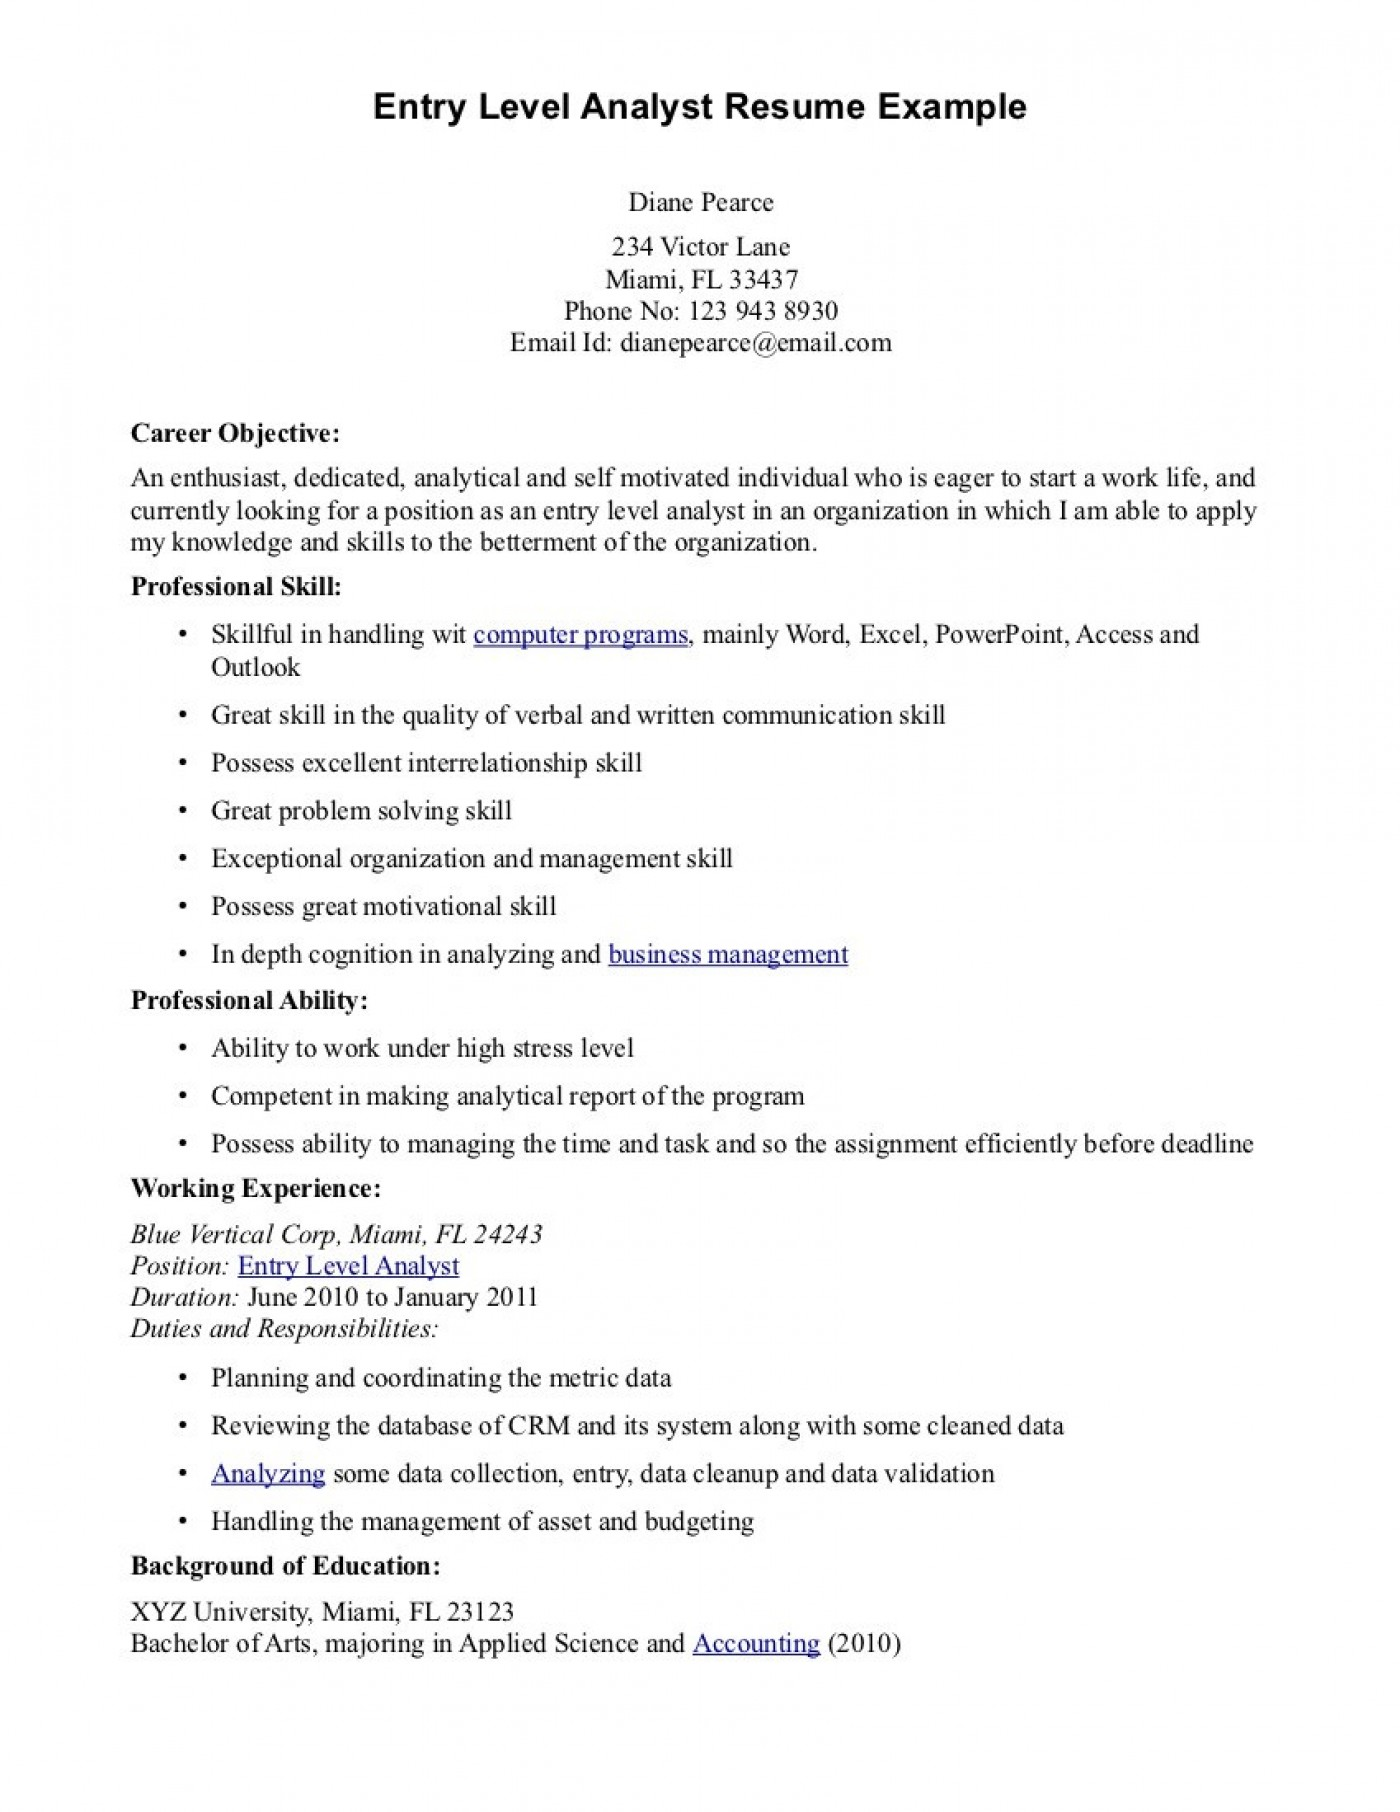 016 Cyber Security Research Paper Example Entry Level Resume Objective Examples Dreaded 1400